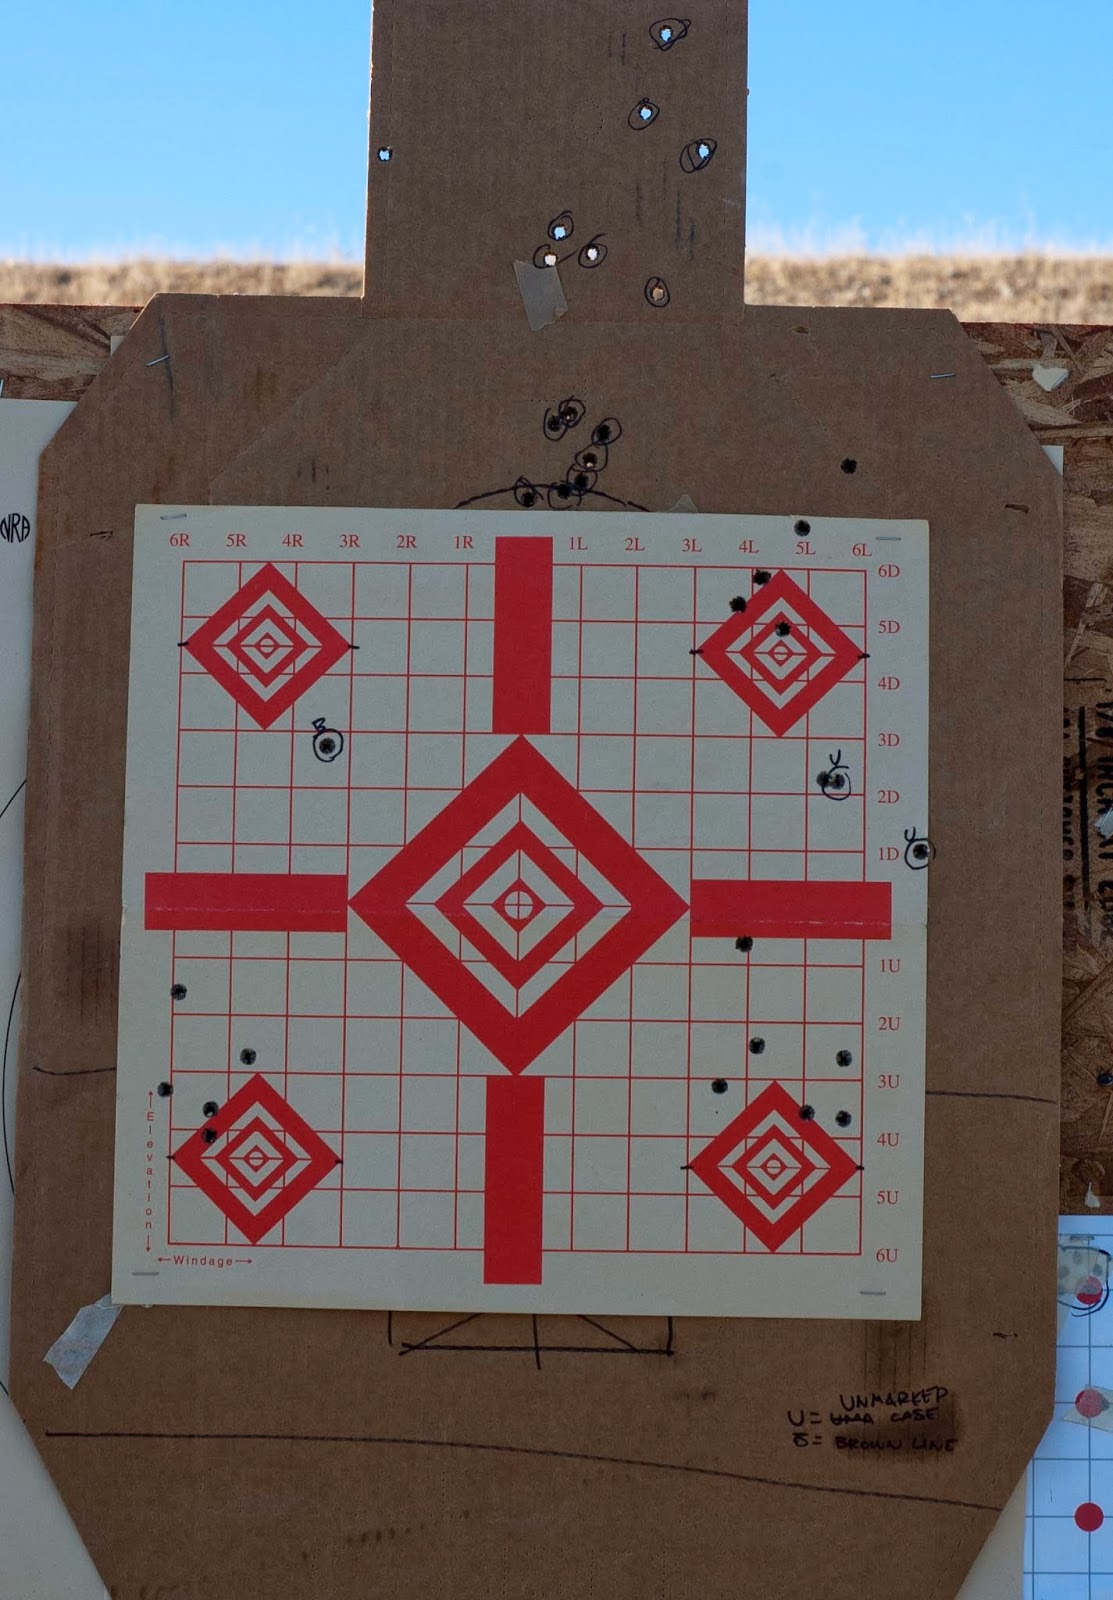 k31 130 and 168 grain projectiles/IMR 4895 | Don't fart on a